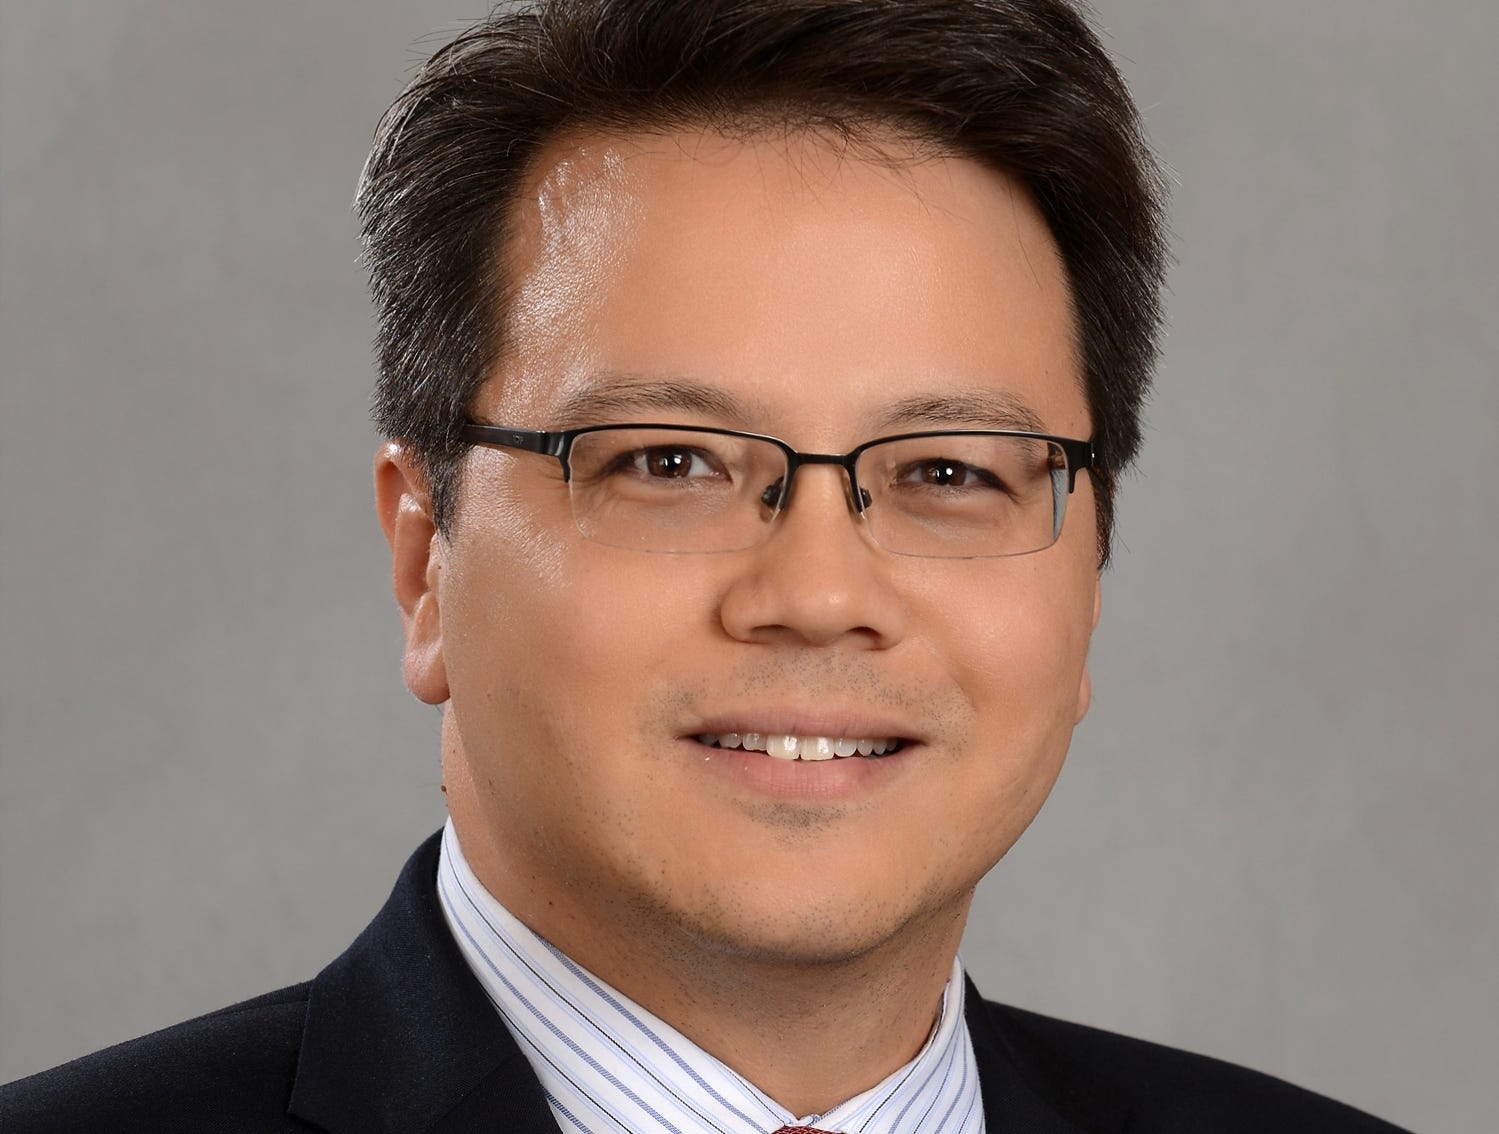 Andrew Ching Tempe City Manager Appointed: 2013 Annual base salary: $208,046* No car or cell phone allowance *Additional $6,000 in executive benefit as deferred compensation or taxable additional income